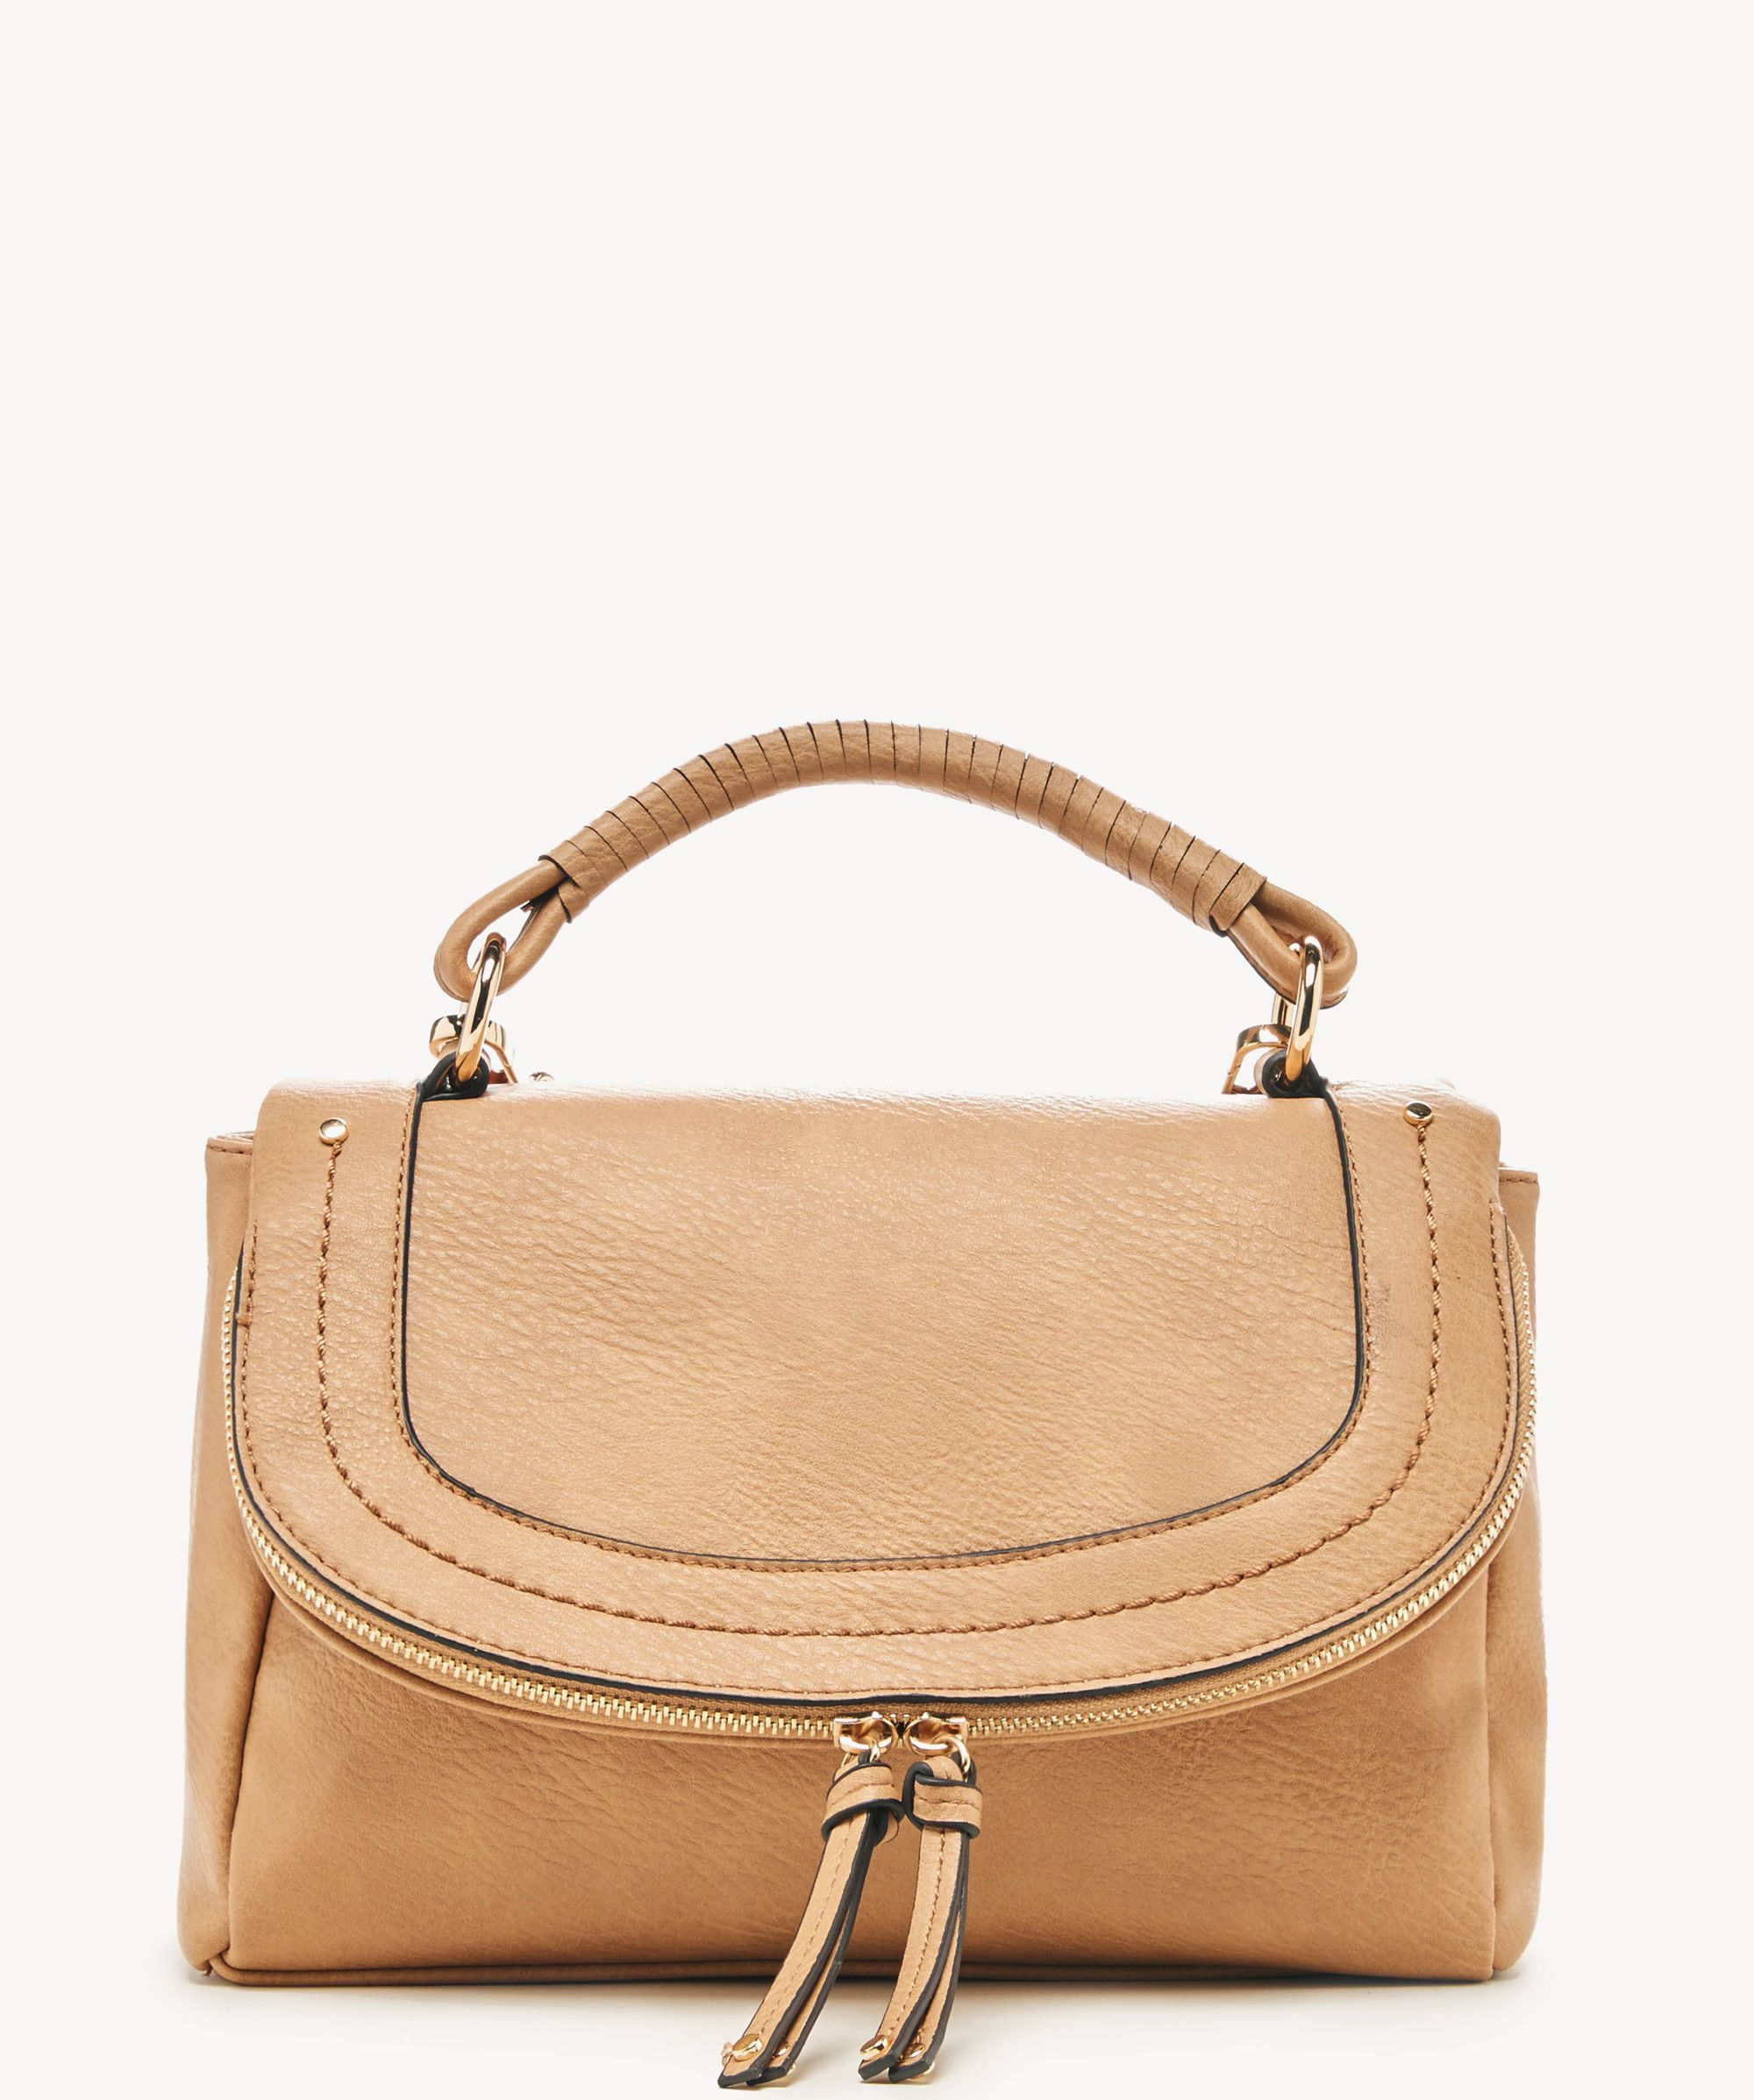 0730c26d52 Sole Society Rubie Crossbody 2 | Sole Society Shoes, Bags and Accessories